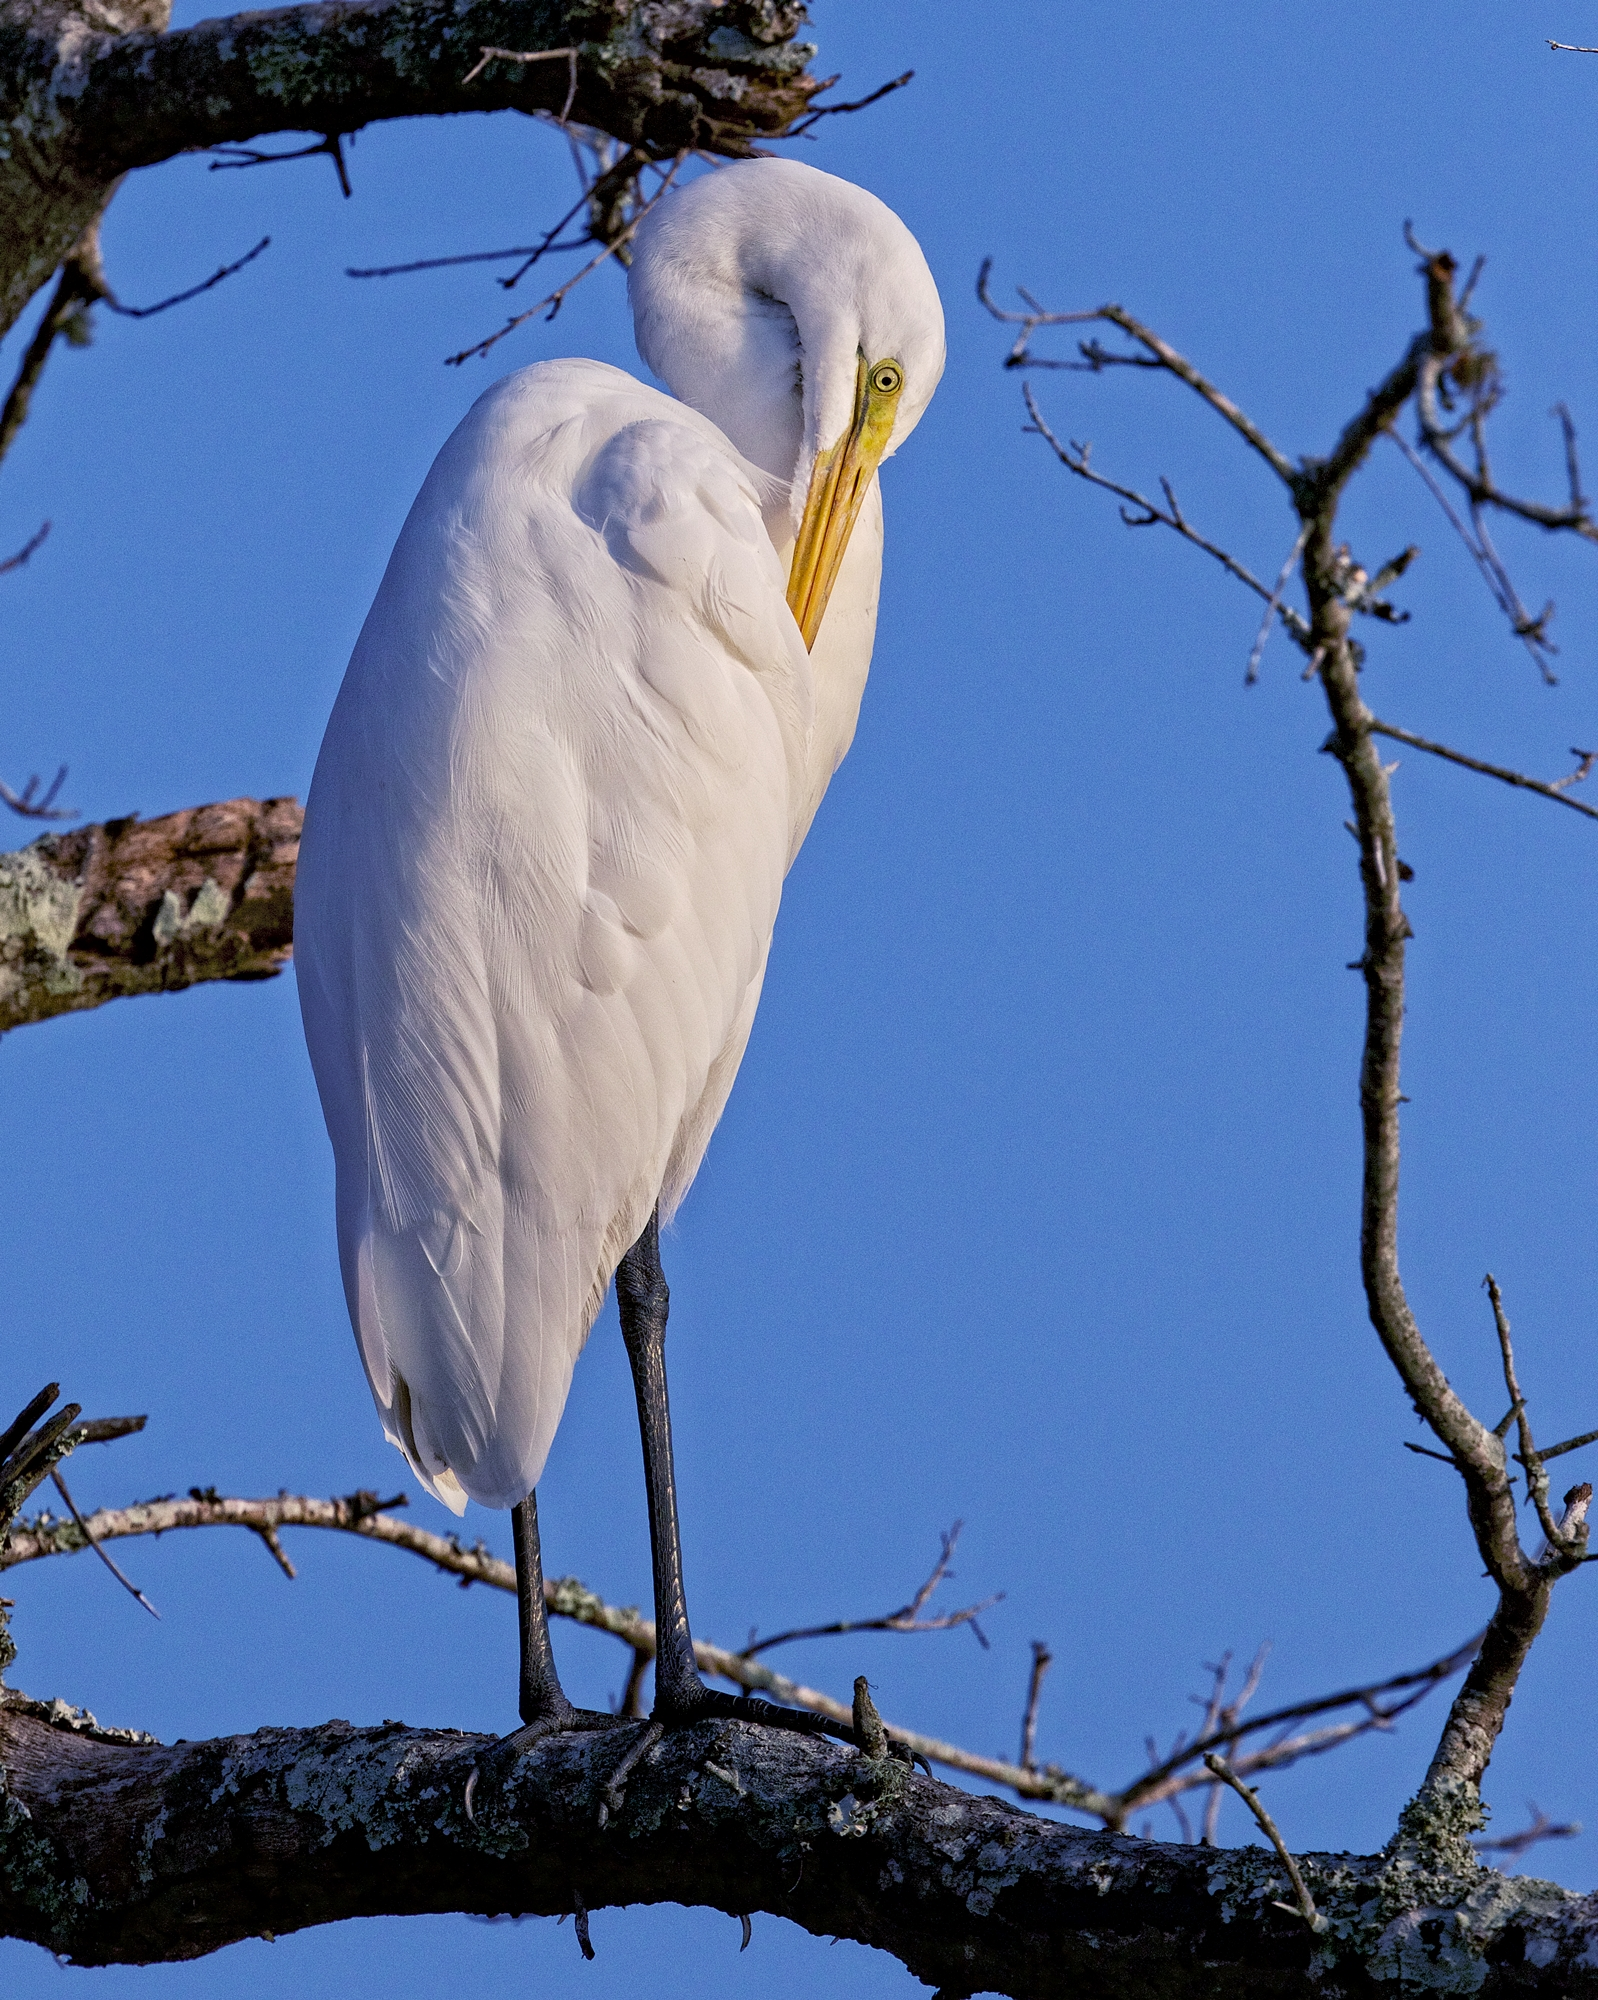 I glance out the window to see this Great Egret preening on a limb..